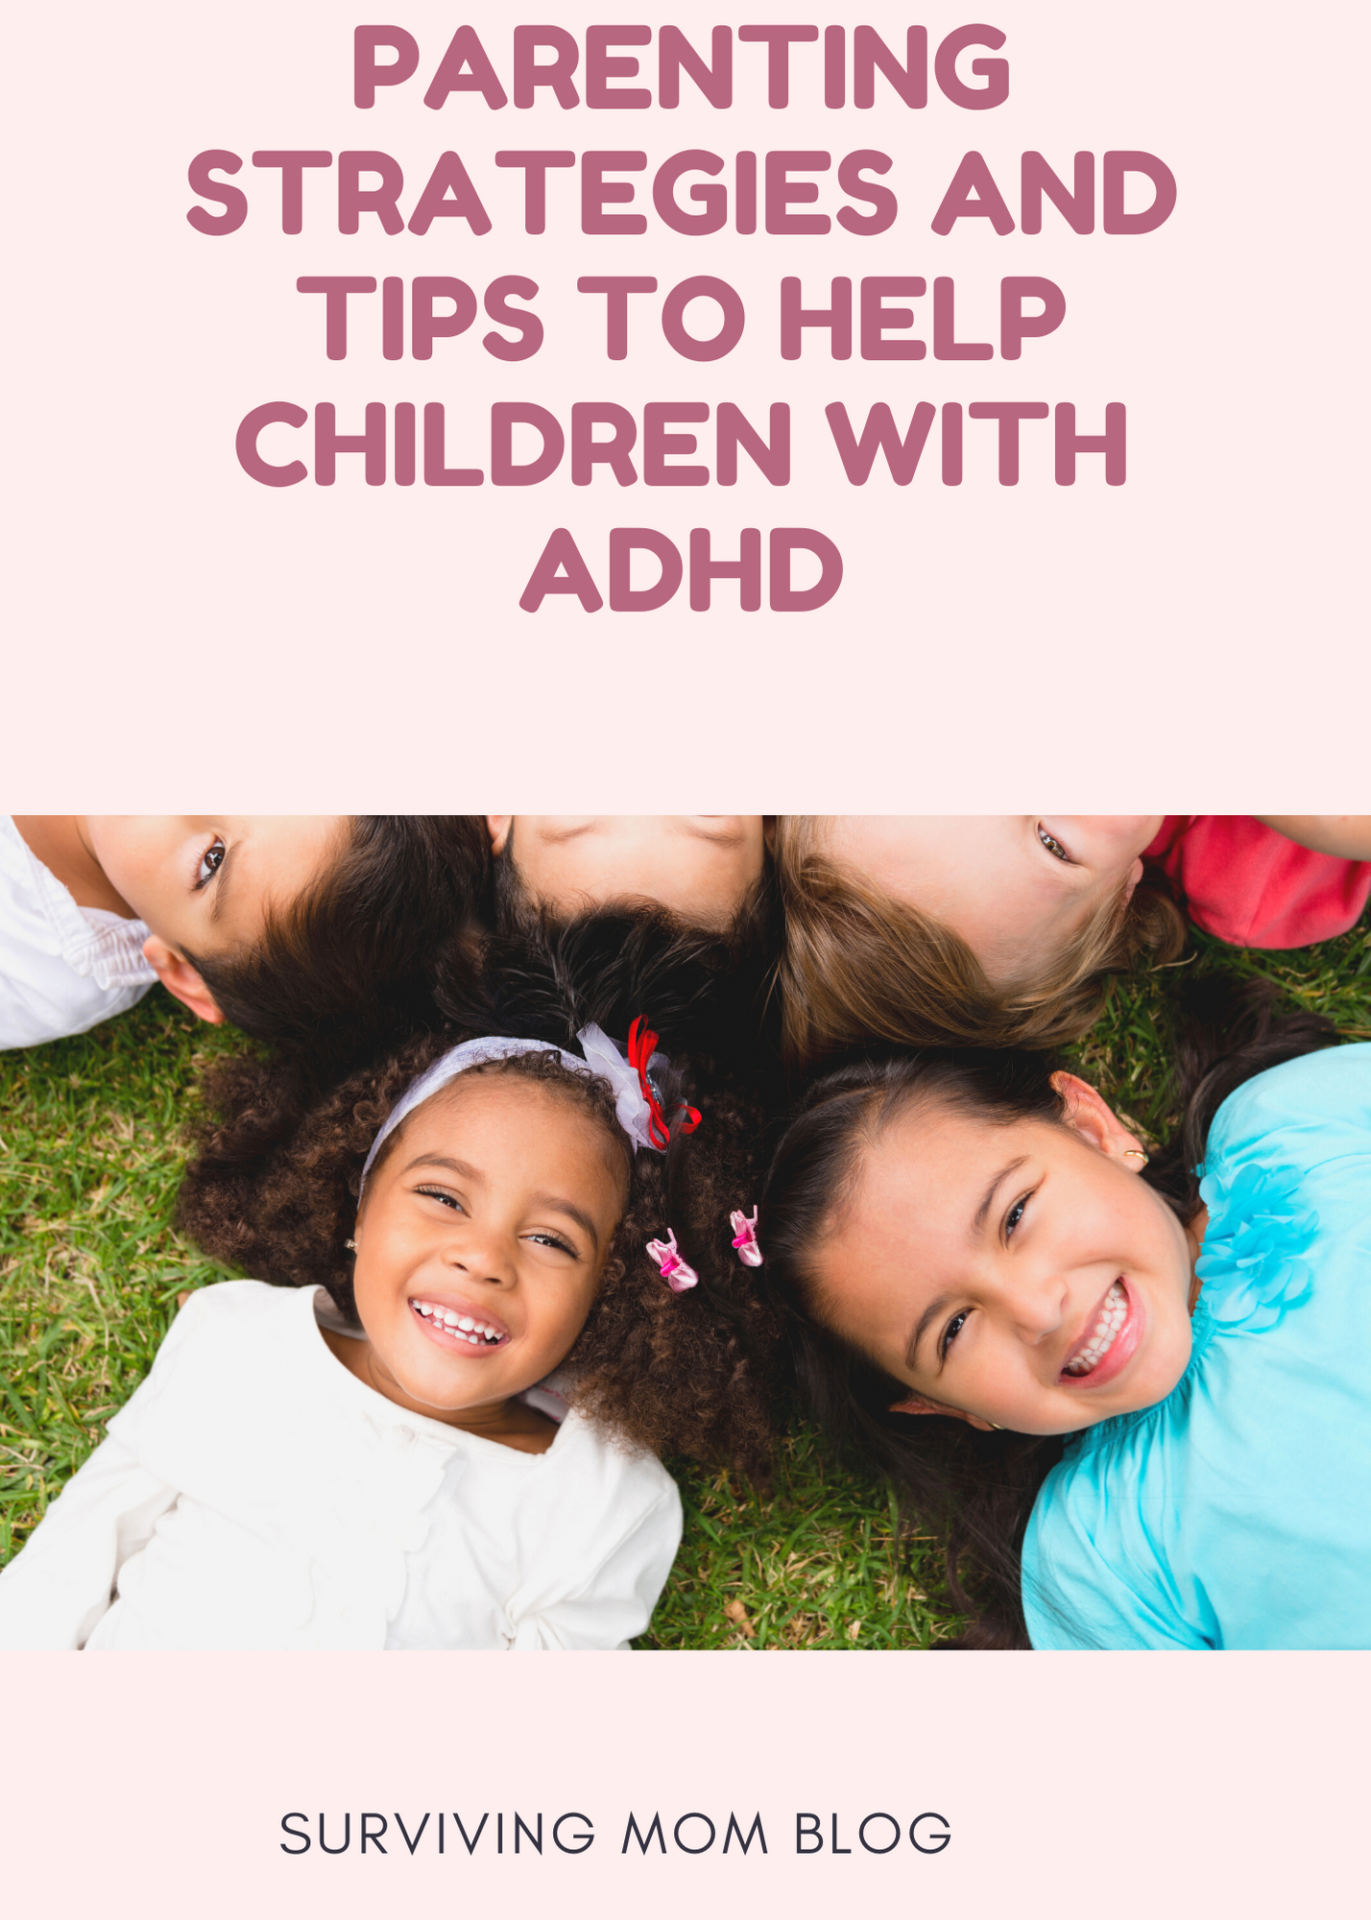 parenting tips and strategies and tips to help